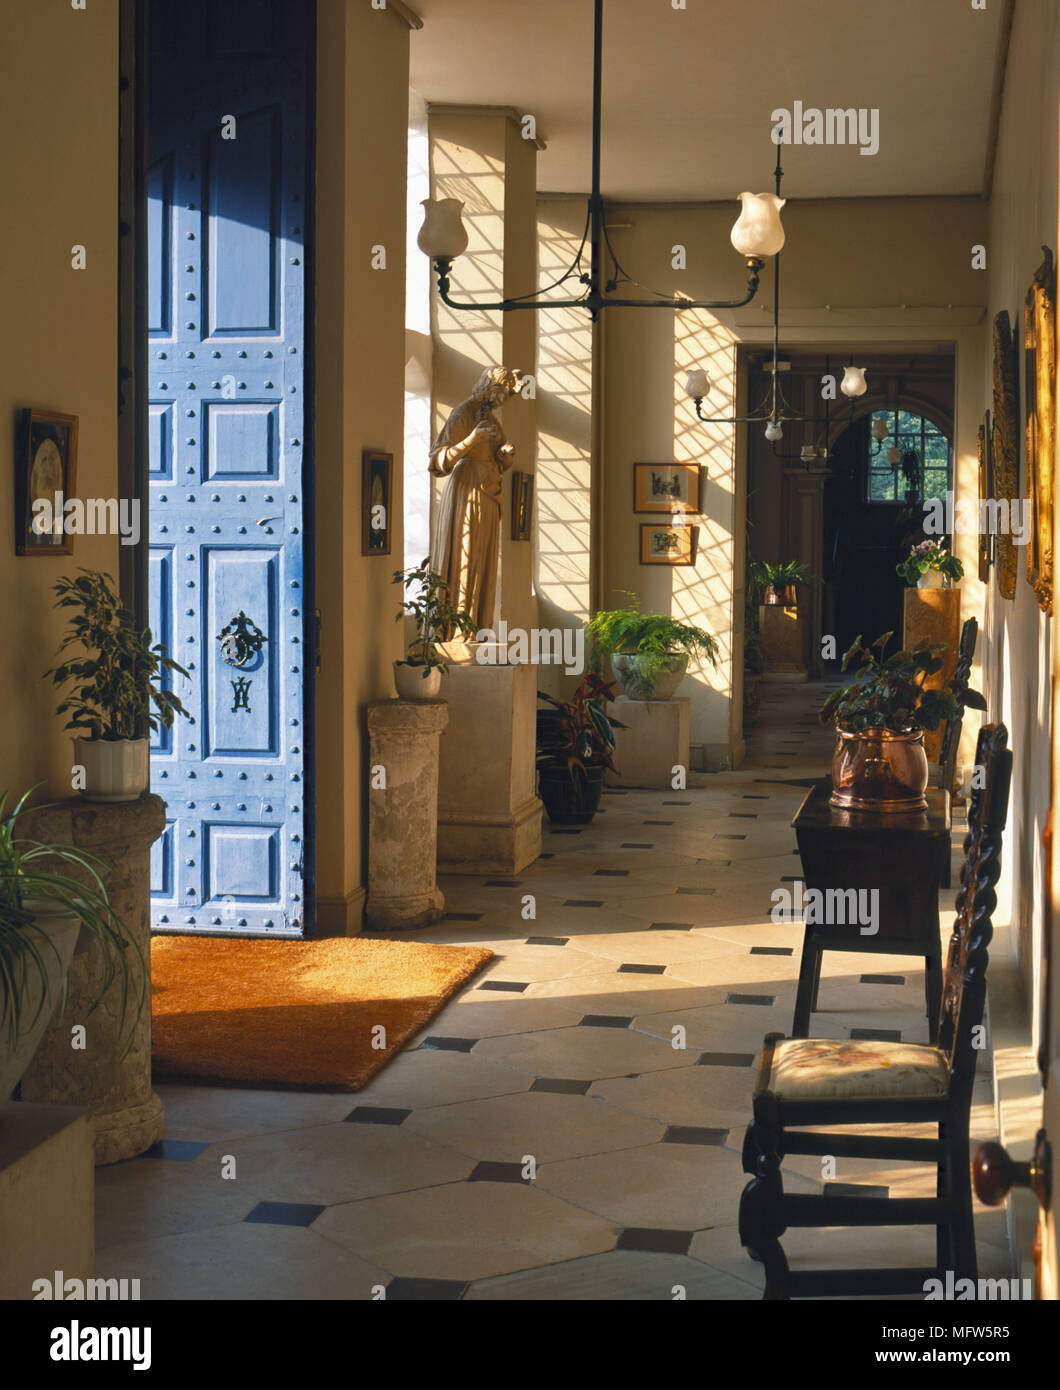 A traditional entrance hallway tiled floor door open Jacobean style wooden chair house plants Stock Photo